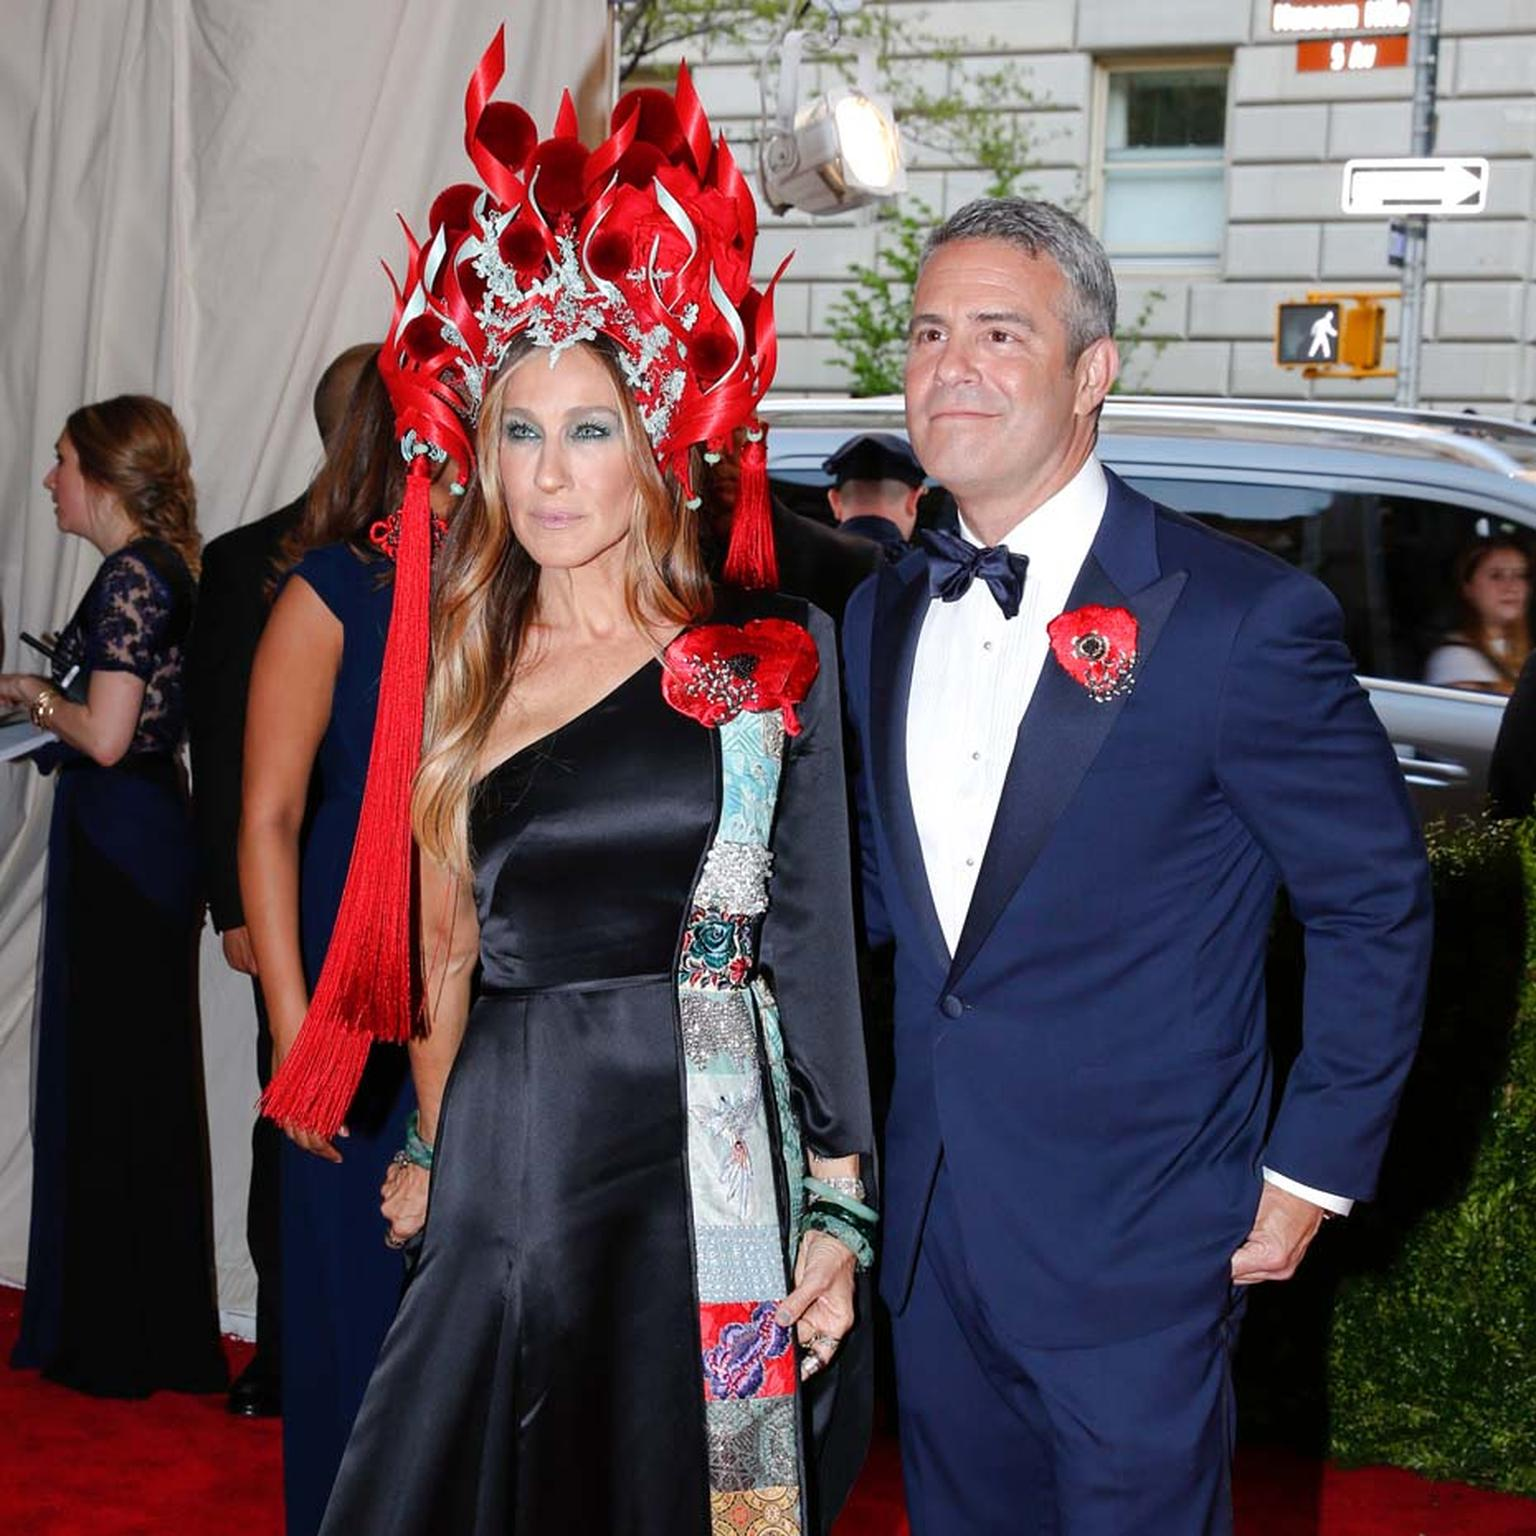 Sarah Jessica Parker may have divided opinion with her Philip Treacy flaming headdress, but her choice of high-street gown by H&M and Cindy Chao Winter Branches brooch, Jennifer Fisher custom-made jade bracelets and Fred Leighton diamond drop earrings was